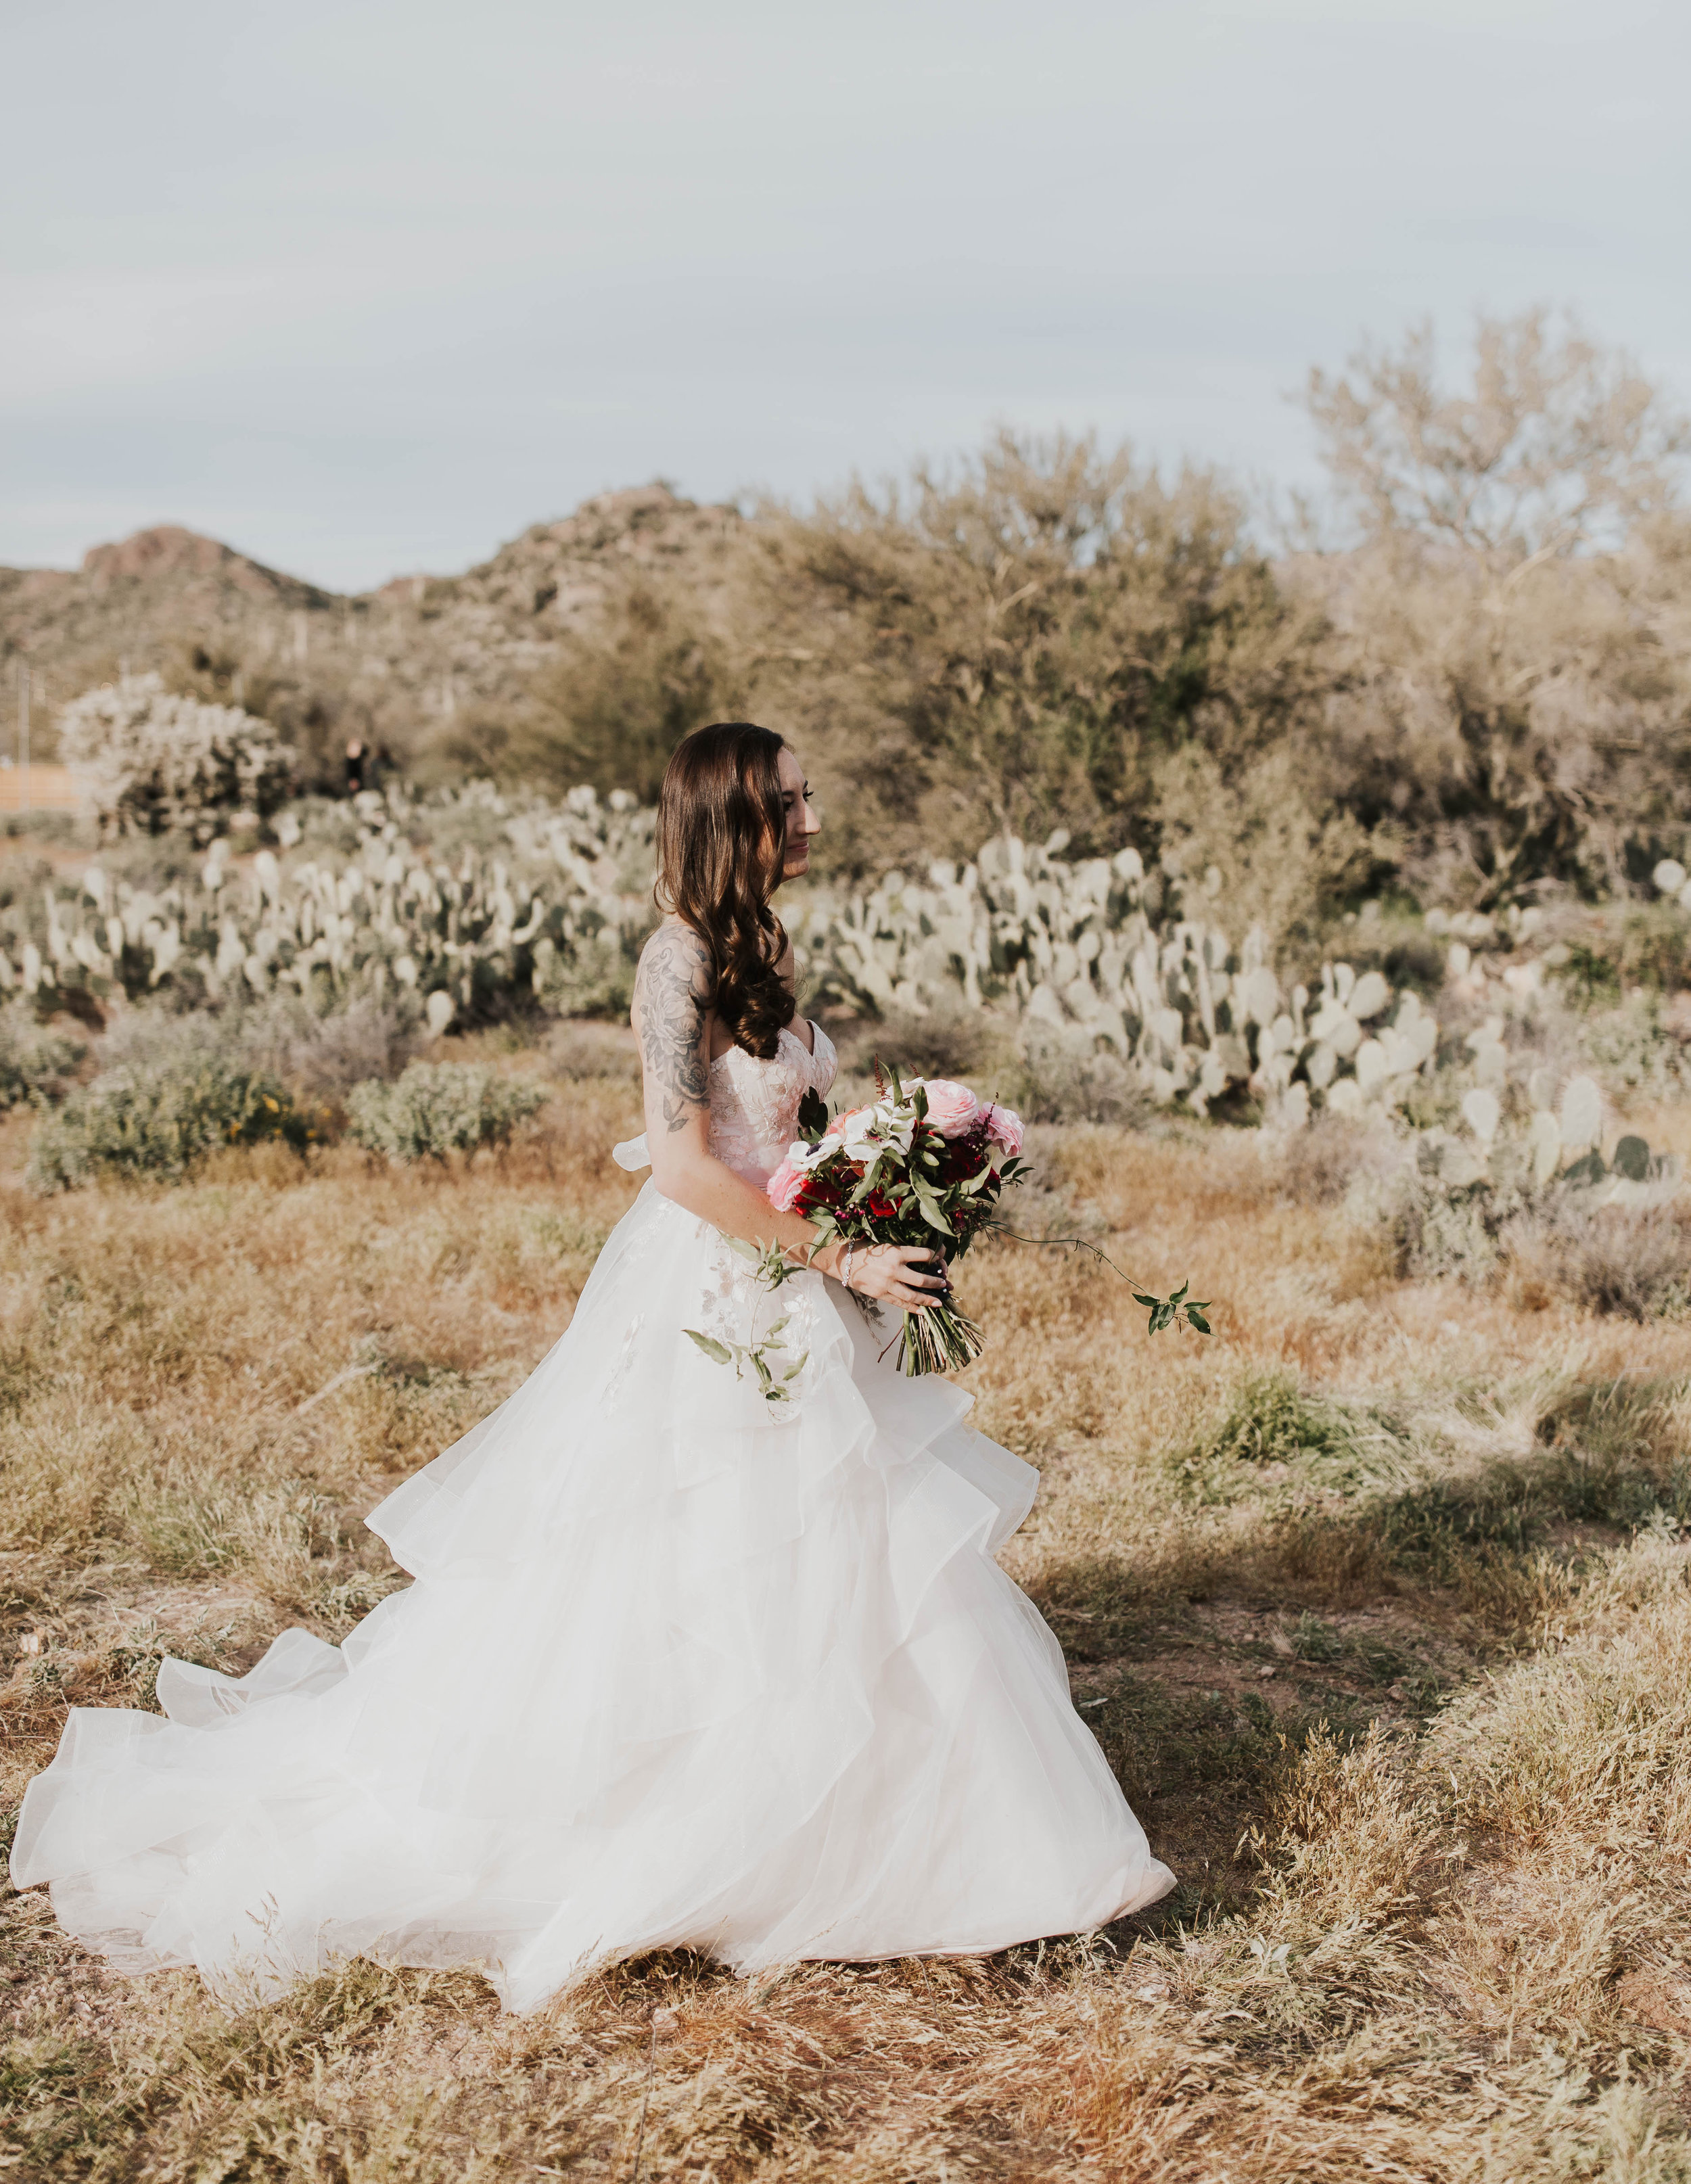 Desert Wedding at Tela Peralta - Arizona florist Phoenix scottsdale Mesa chandler Sedona Flagstaff Prescott - Bride Walking Down the Aisle